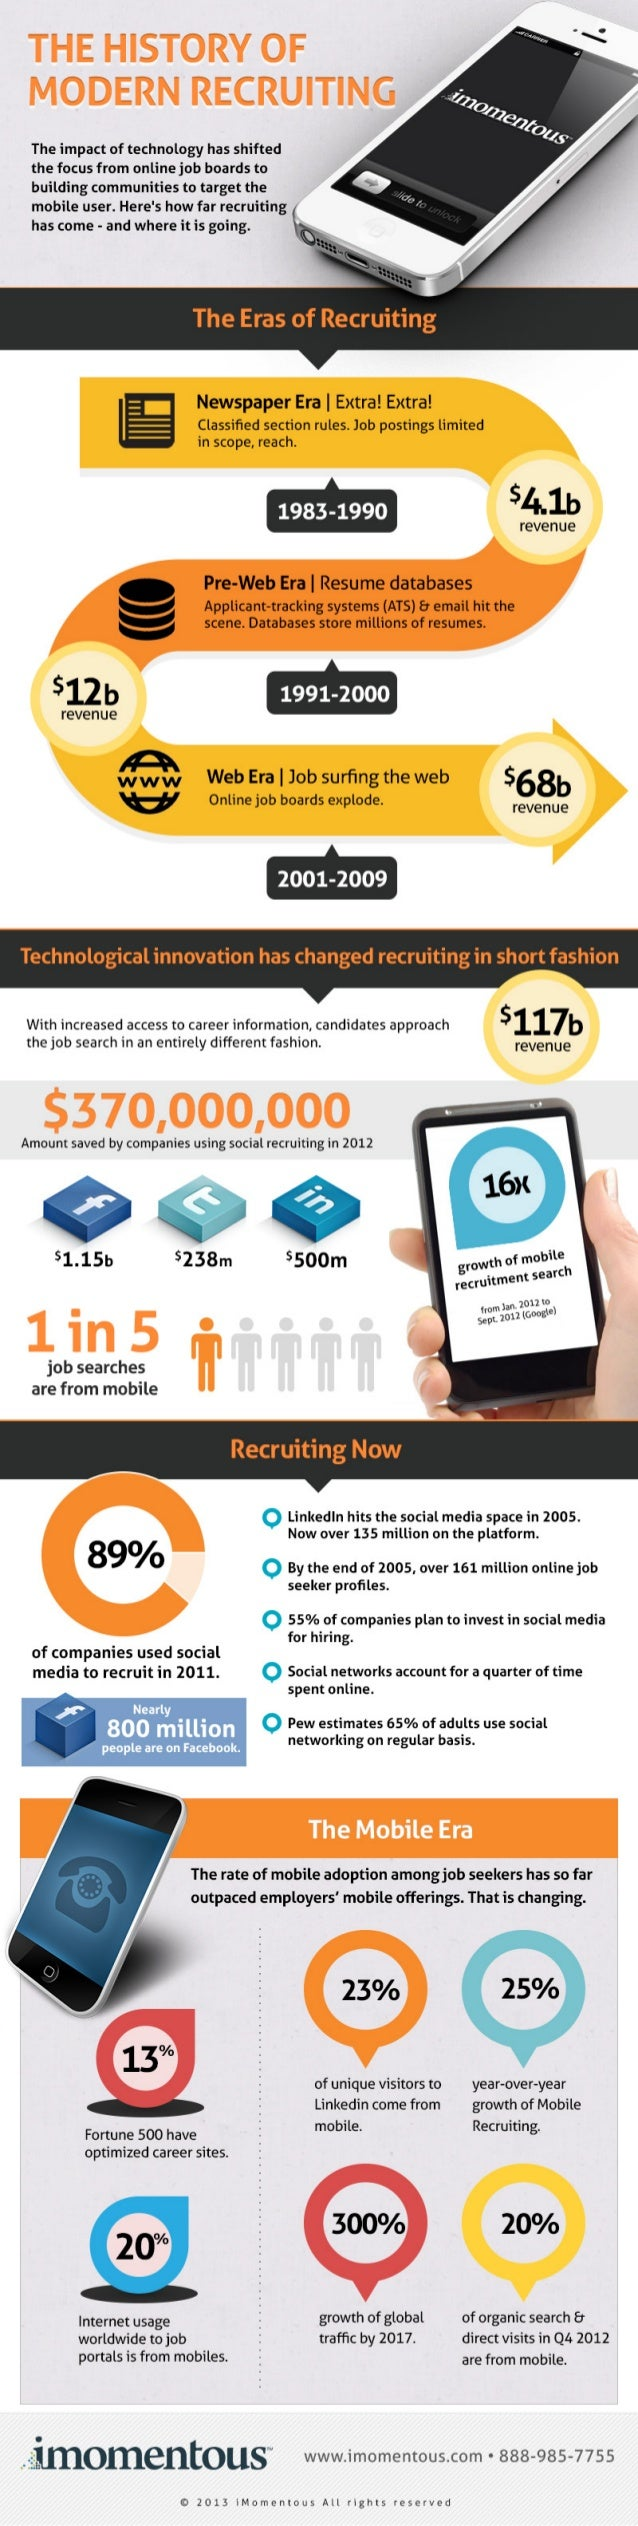 The History of Modern Recruiting